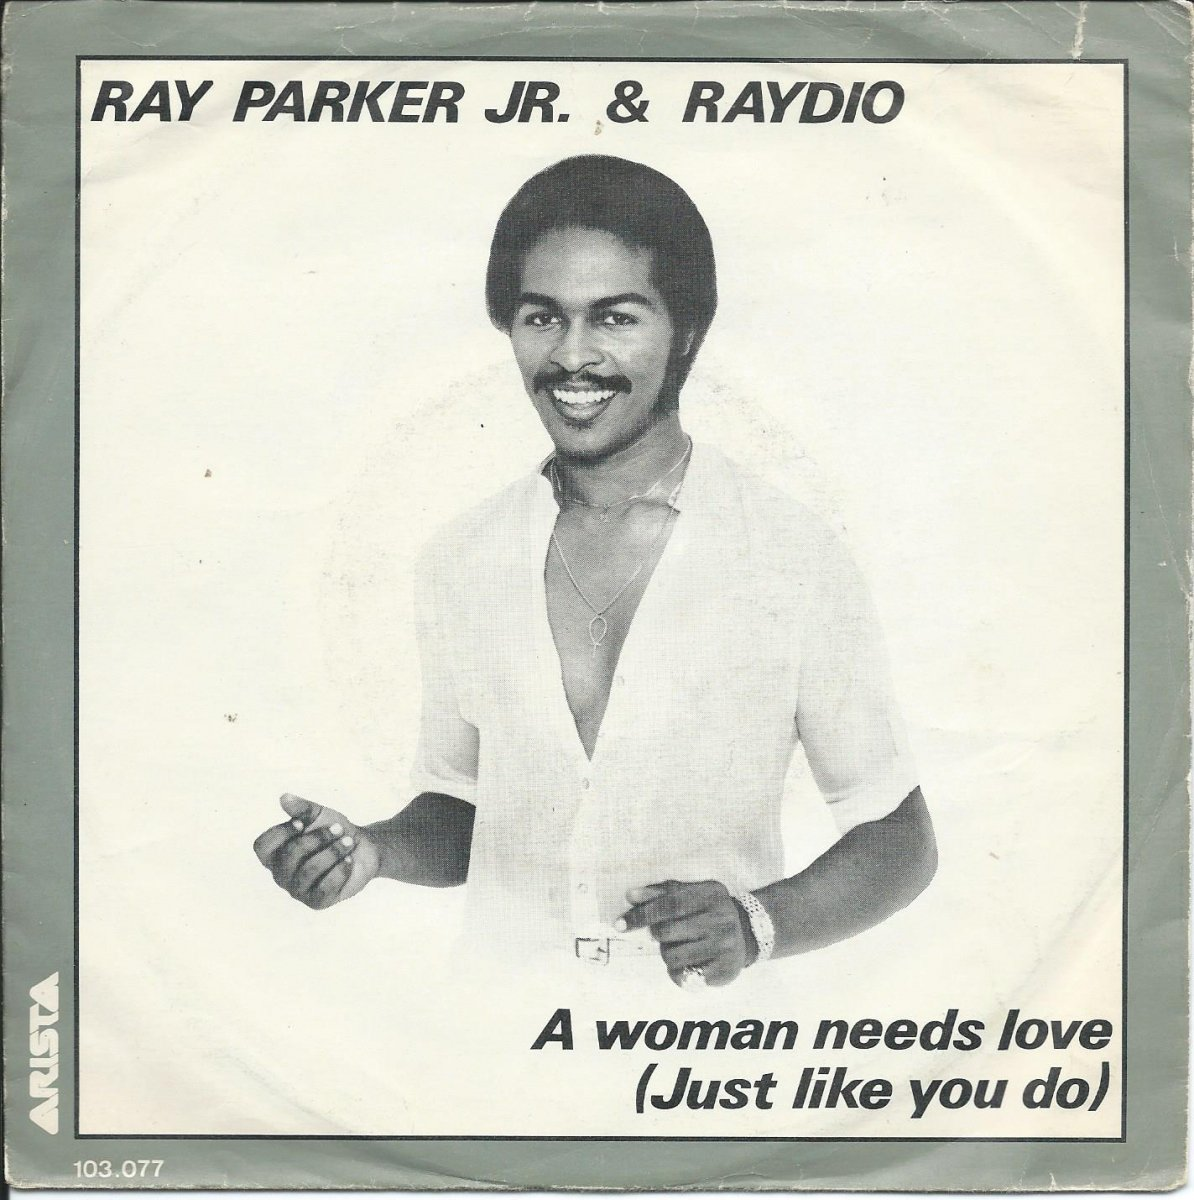 RAY PARKER JR. & RAYDIO / A WOMAN NEEDS LOVE (JUST LIKE YOU DO) (7